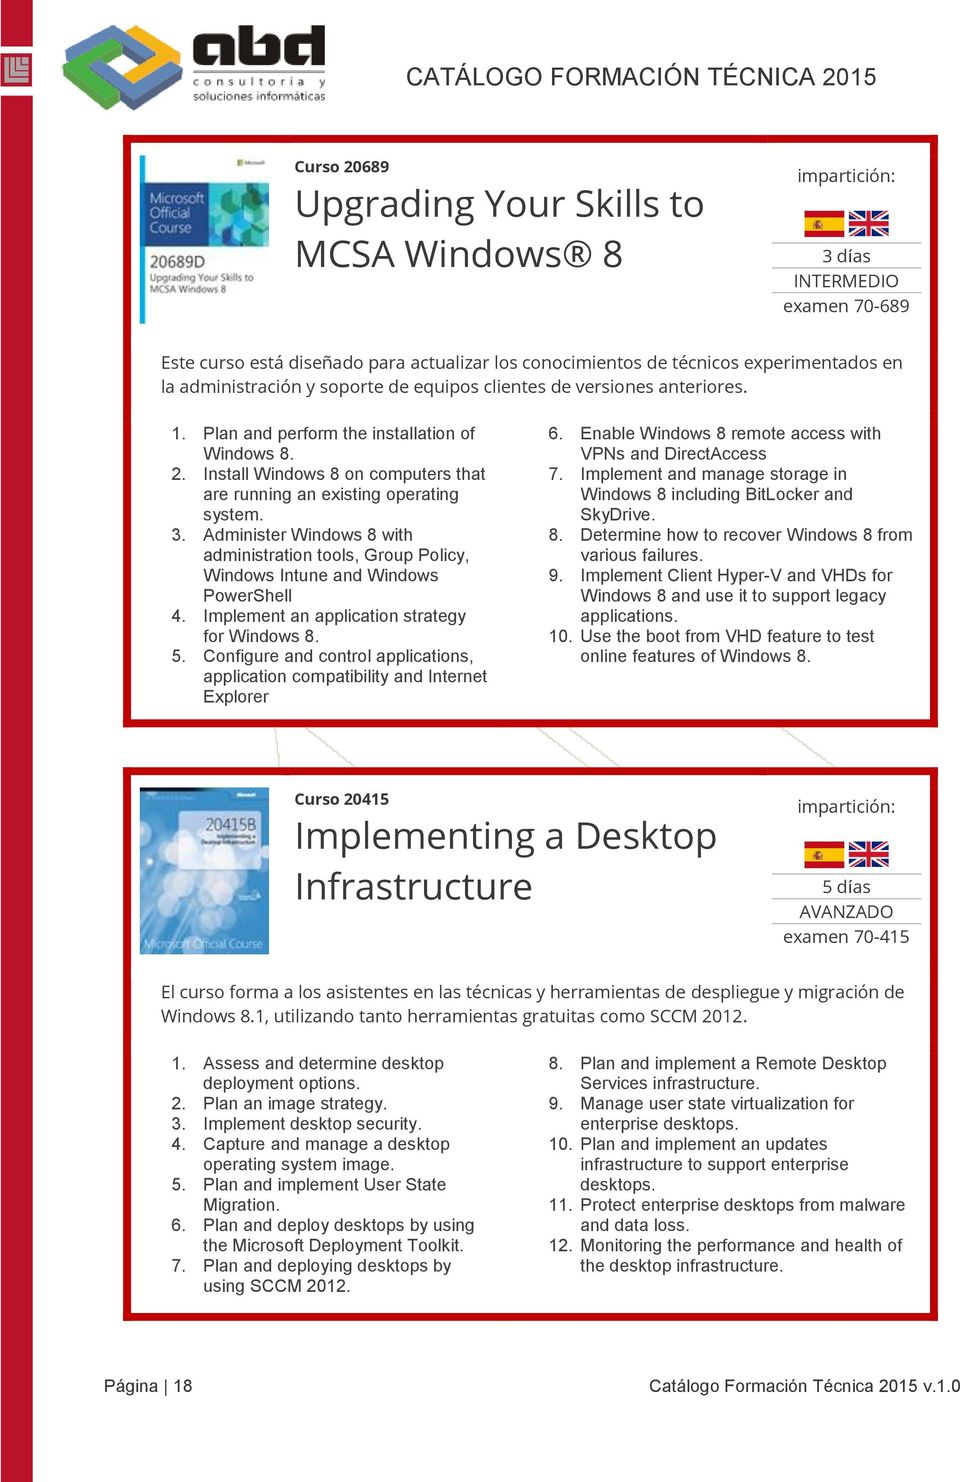 Administer Windows 8 with administration tools, Group Policy, Windows Intune and Windows PowerShell 4. Implement an application strategy for Windows 8. 5.